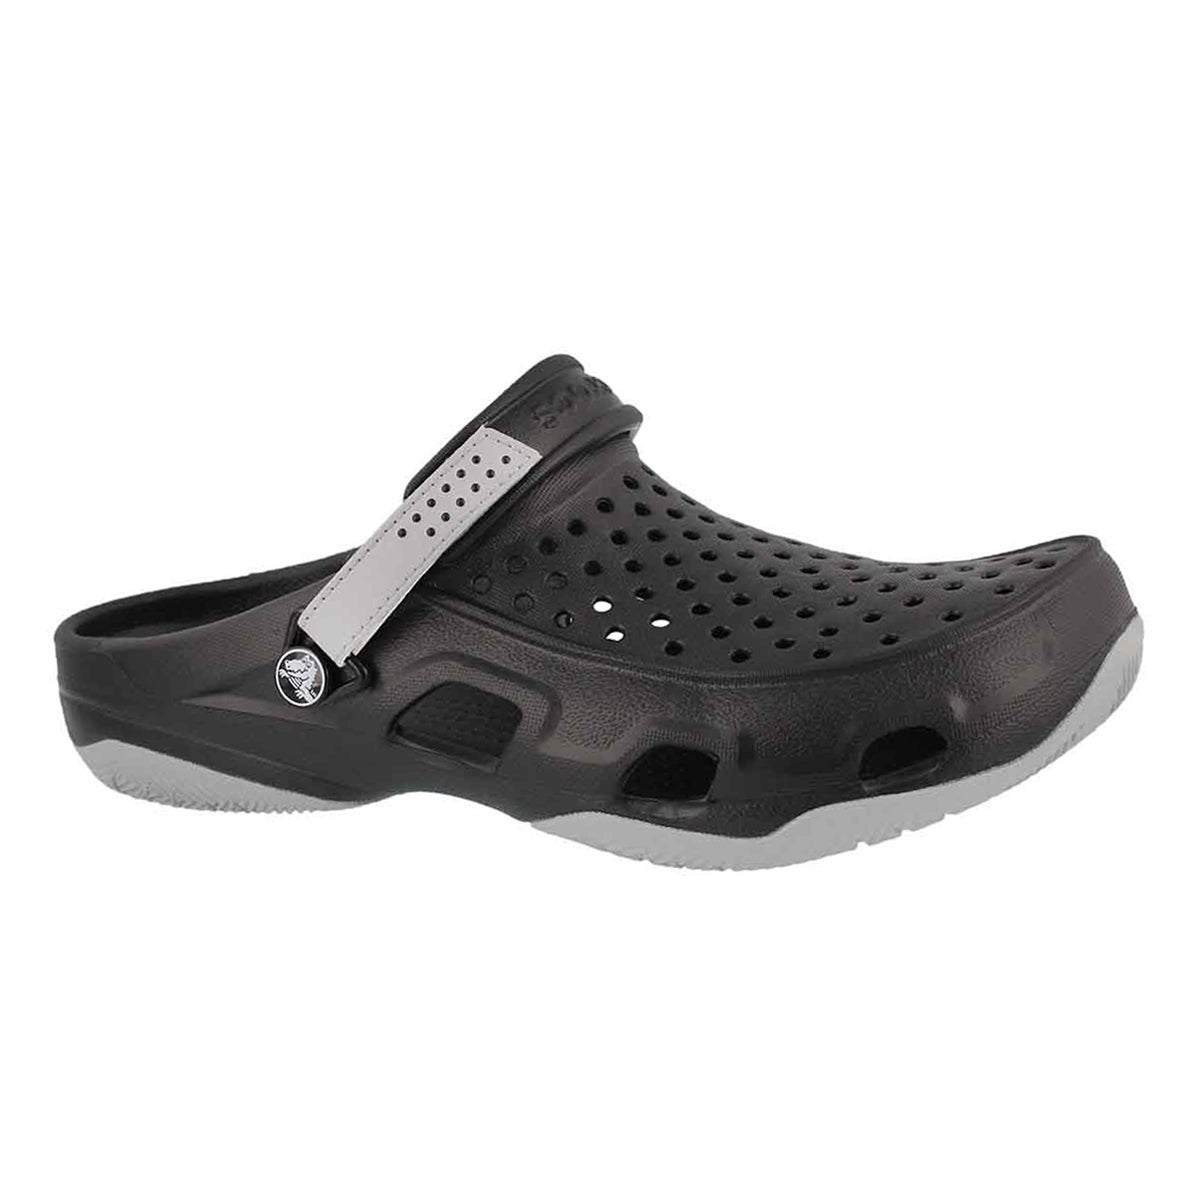 Men's SWIFTWATER DECK black/lght grey clogs